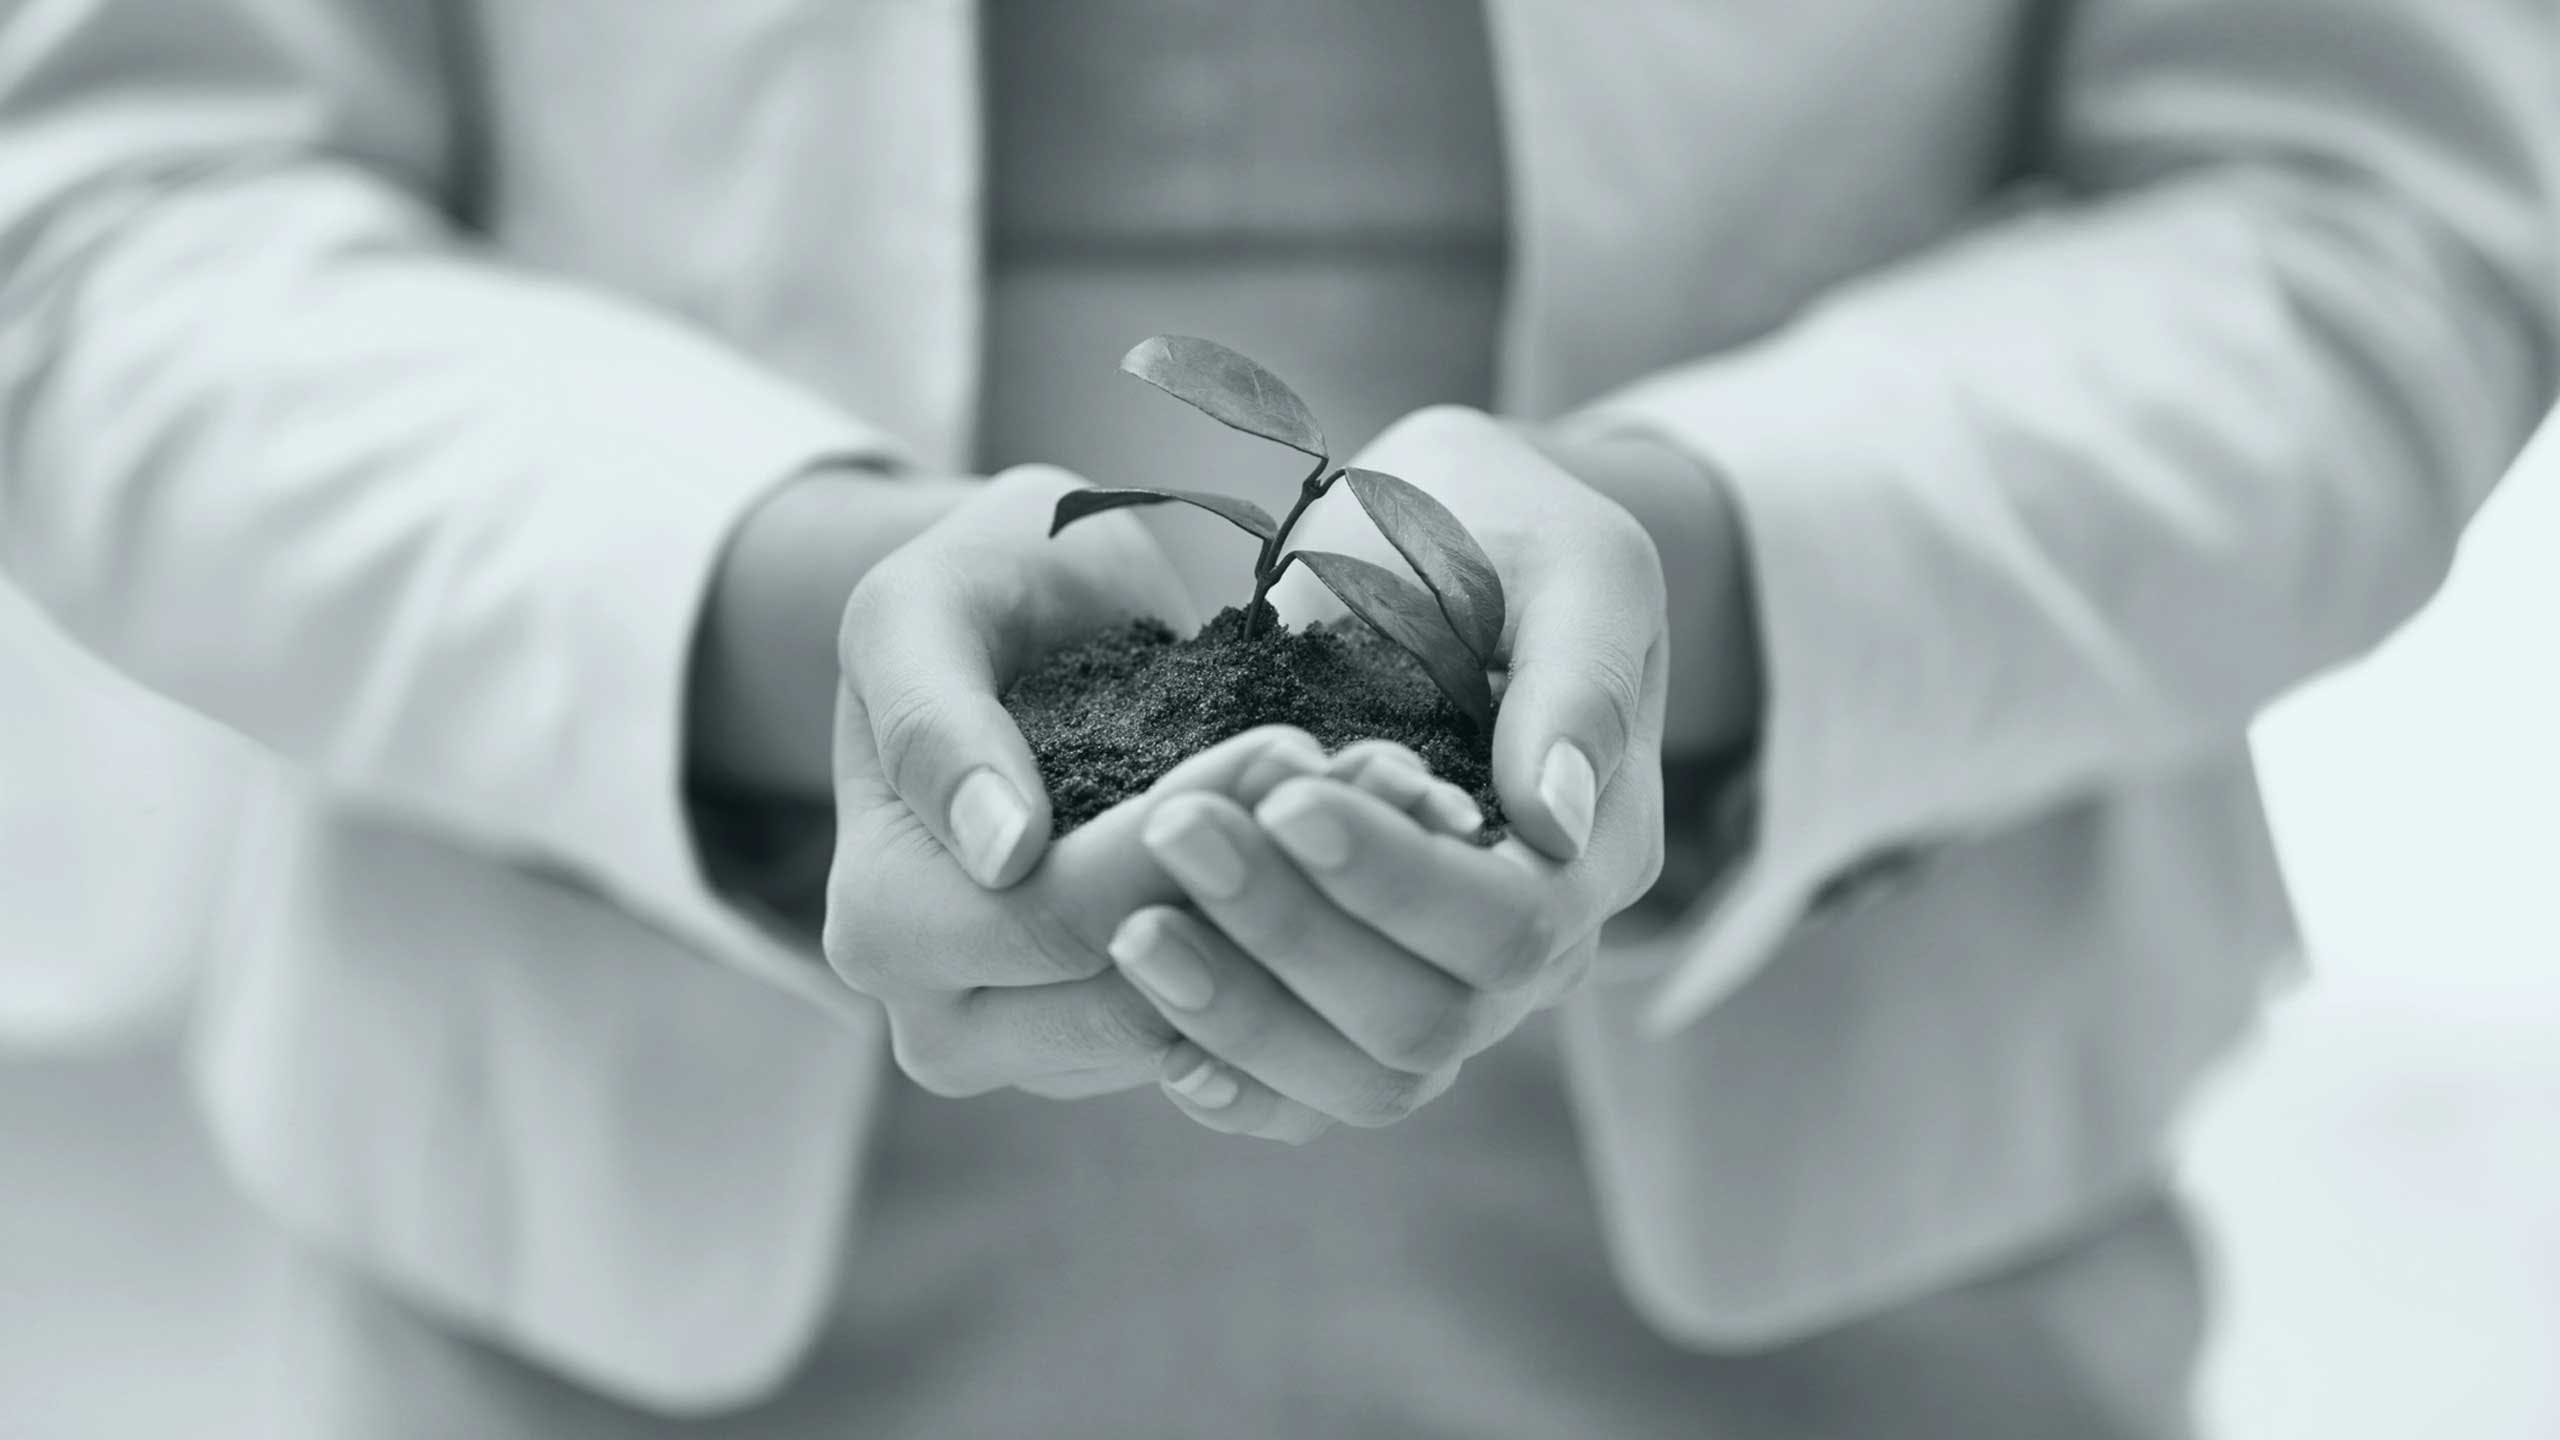 Cropped shot of a hands holding a budding plant